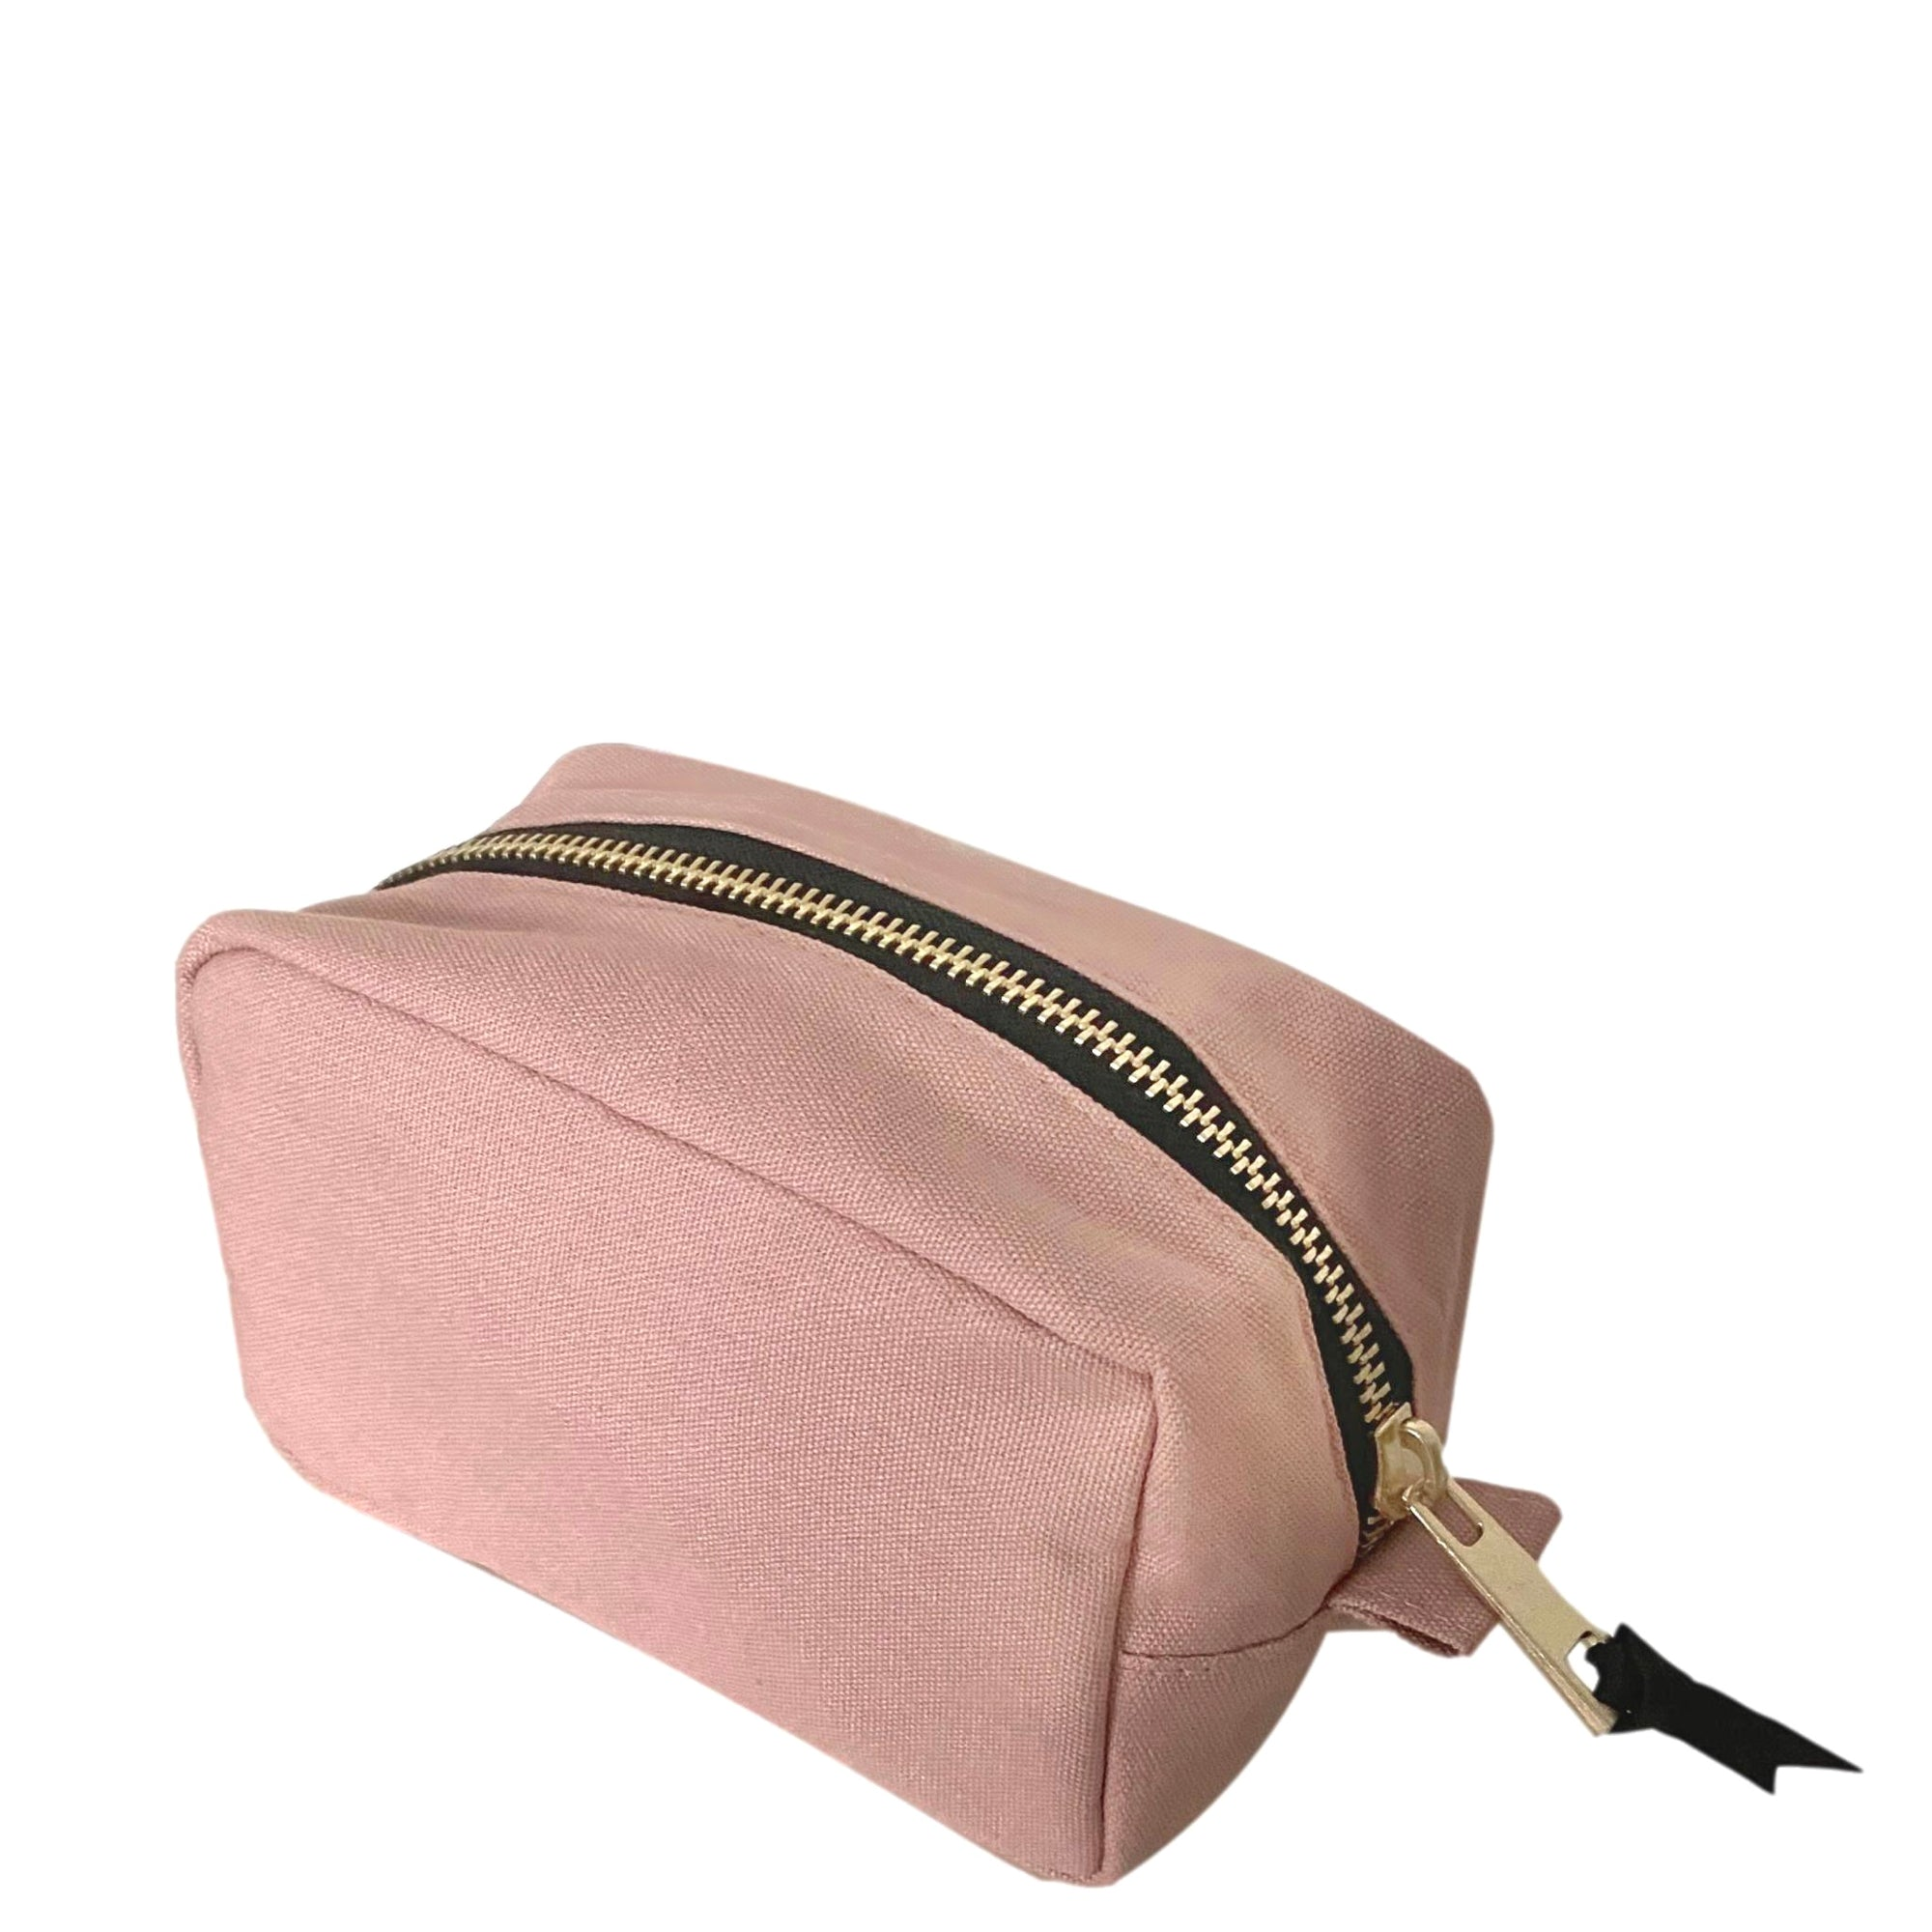 Toiletry Case Souki Small - Pink - Bag-all Europe